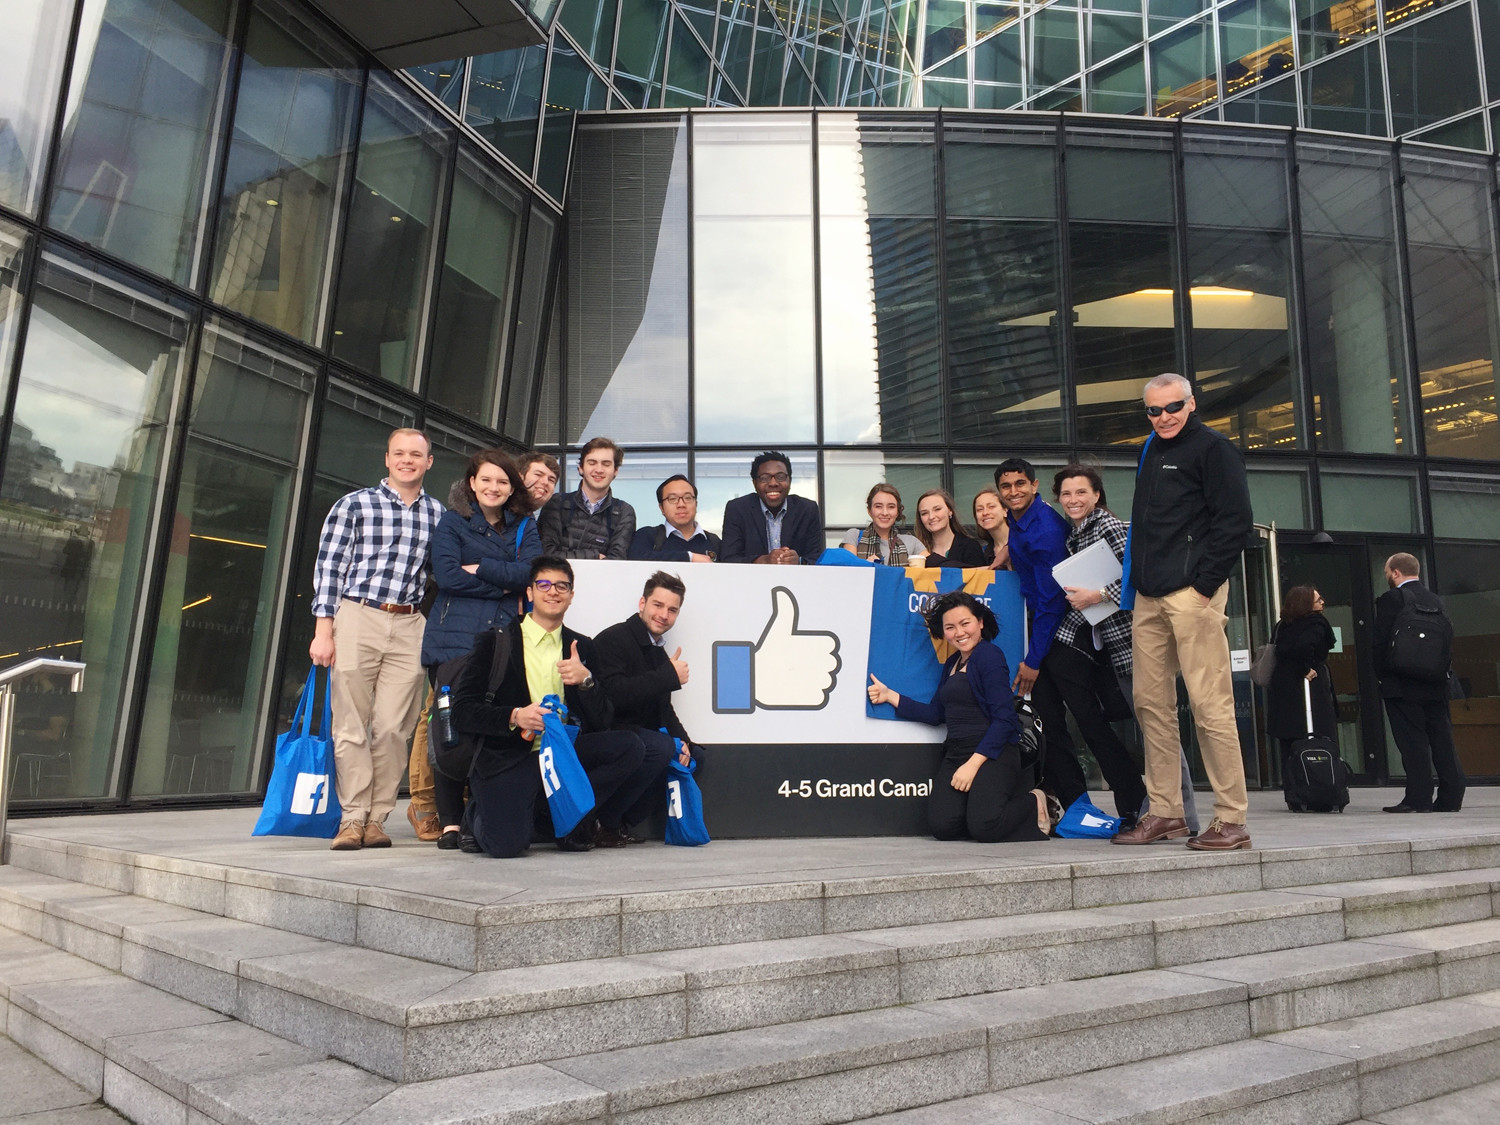 Students in front of Facebook's Dublin office. (Photo courtesy of Nicole Montgomery)